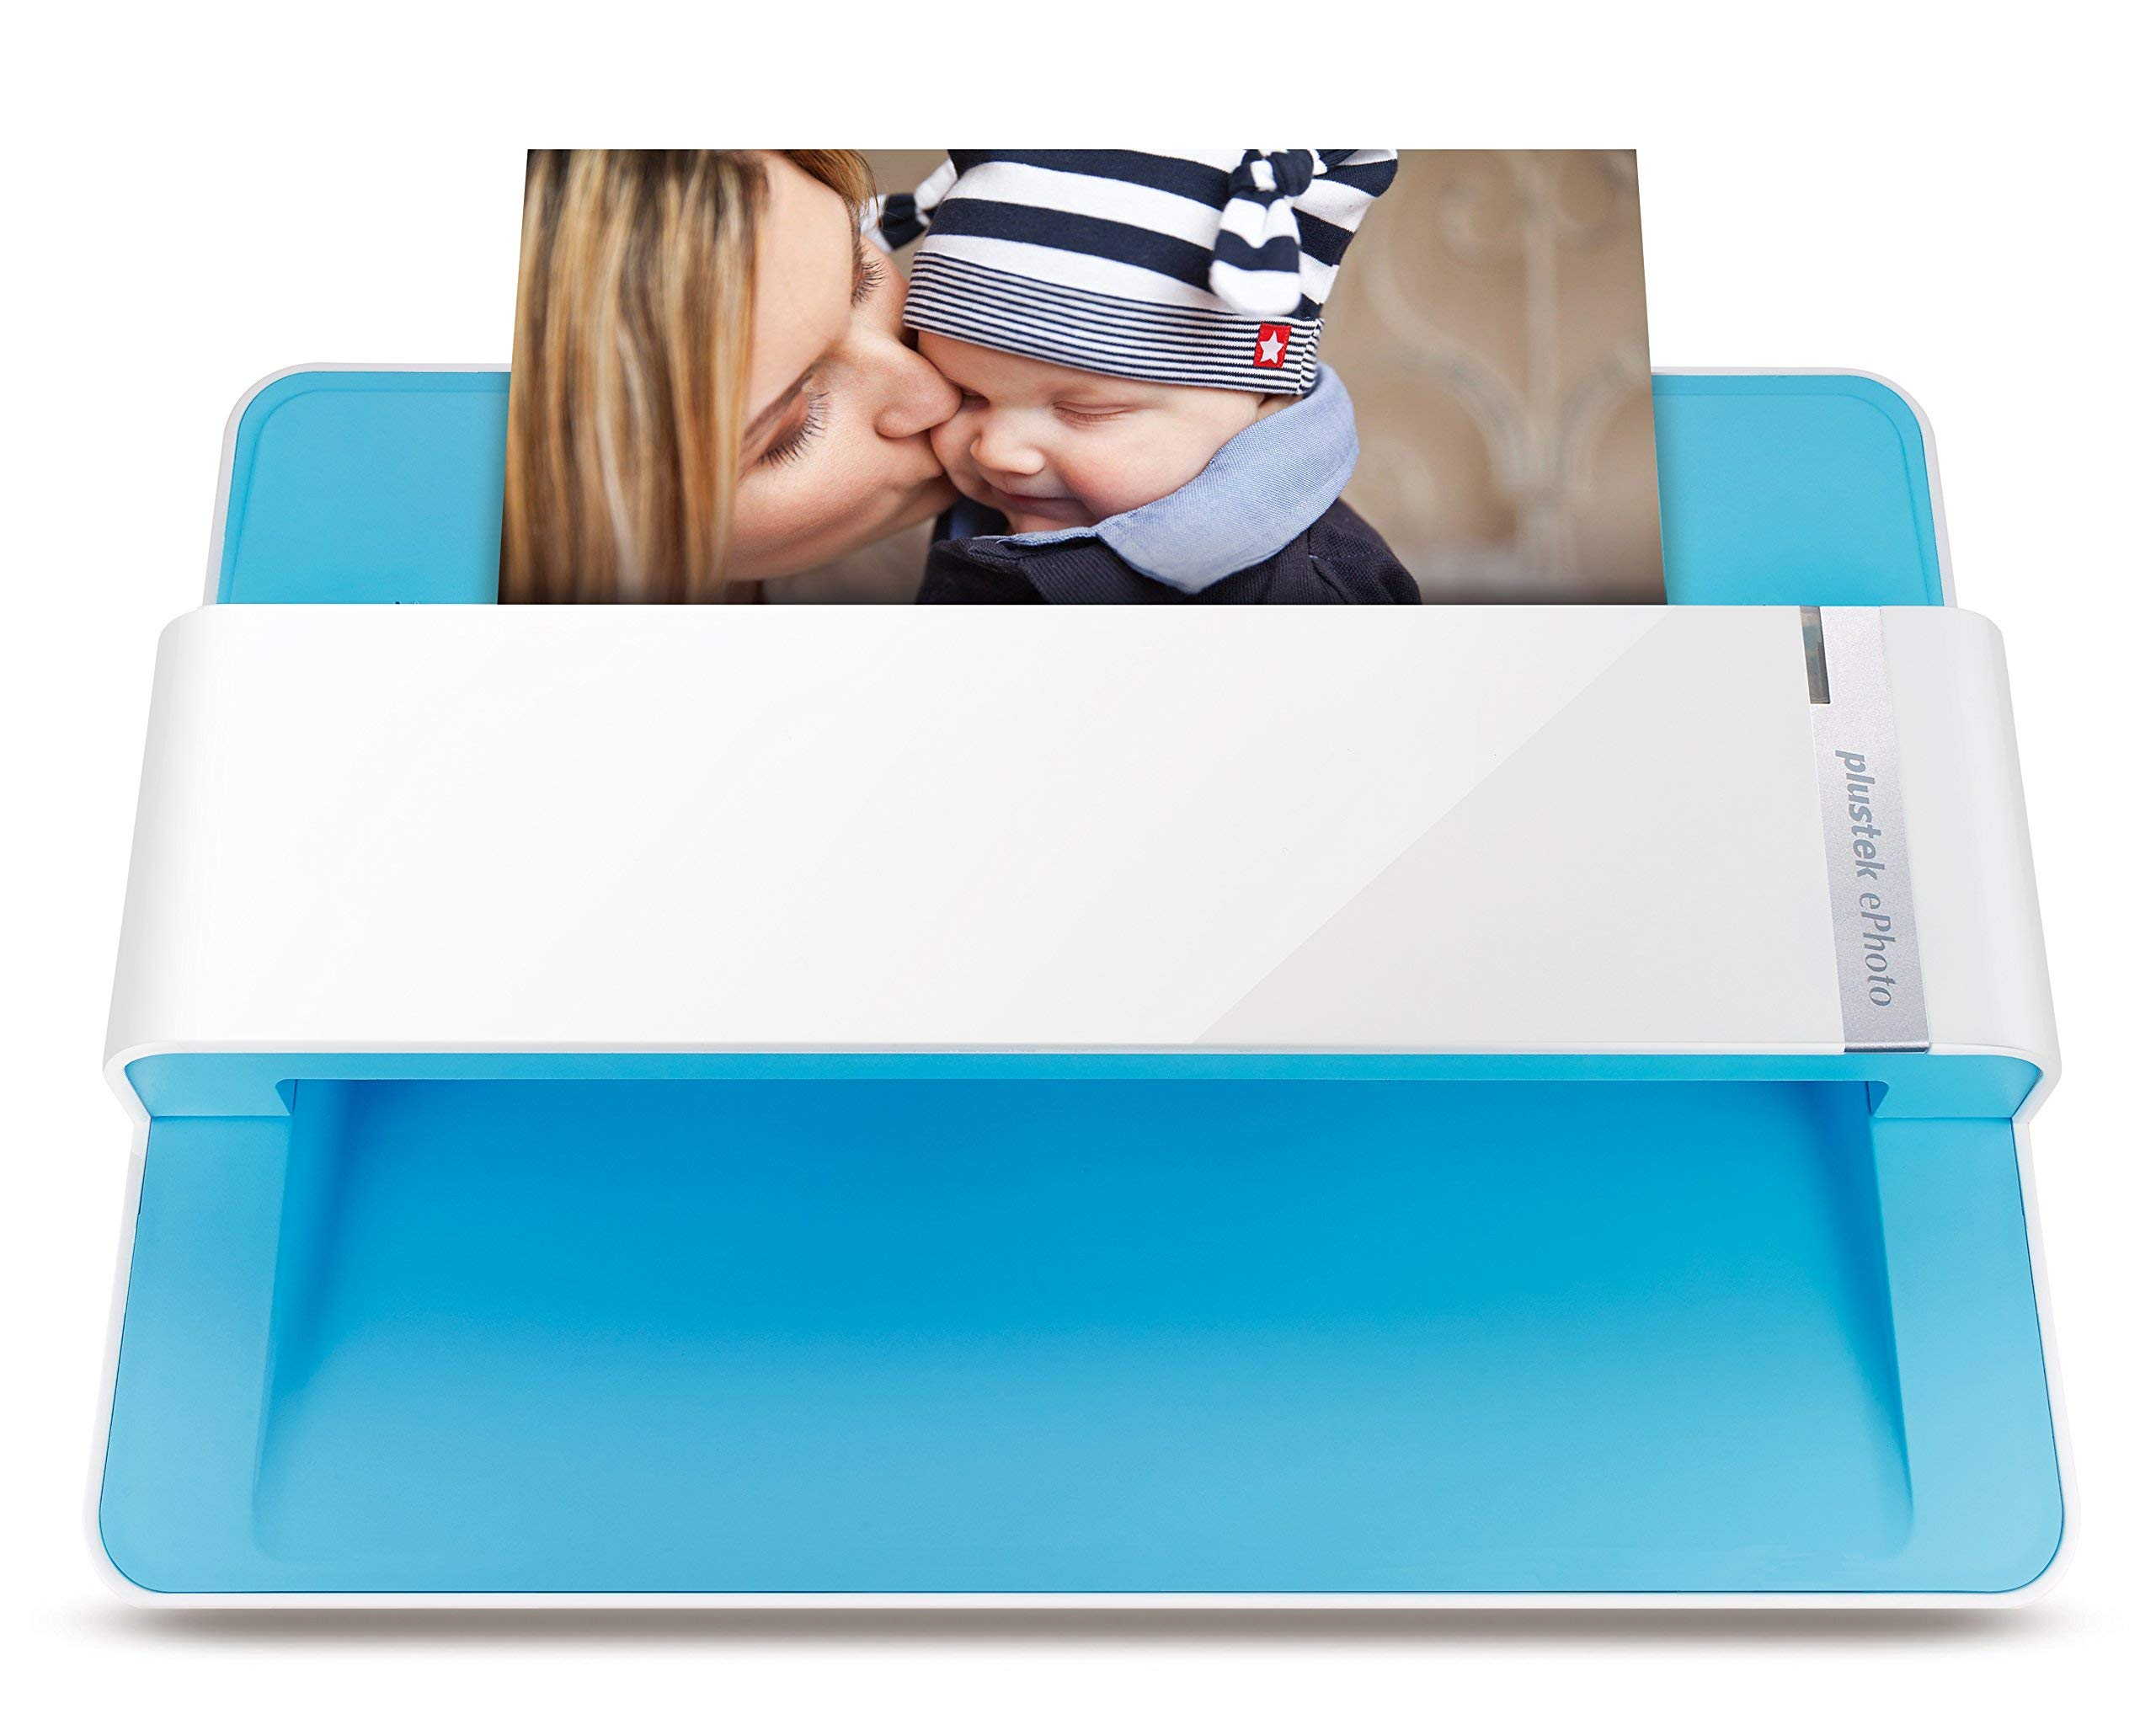 Plustek Photo Scanner - ephoto Z300, Scan 4x6 Photo in 2sec, Auto Crop and Deskew with CCD Sensor. Support Mac and PC (Renewed) by Plustek